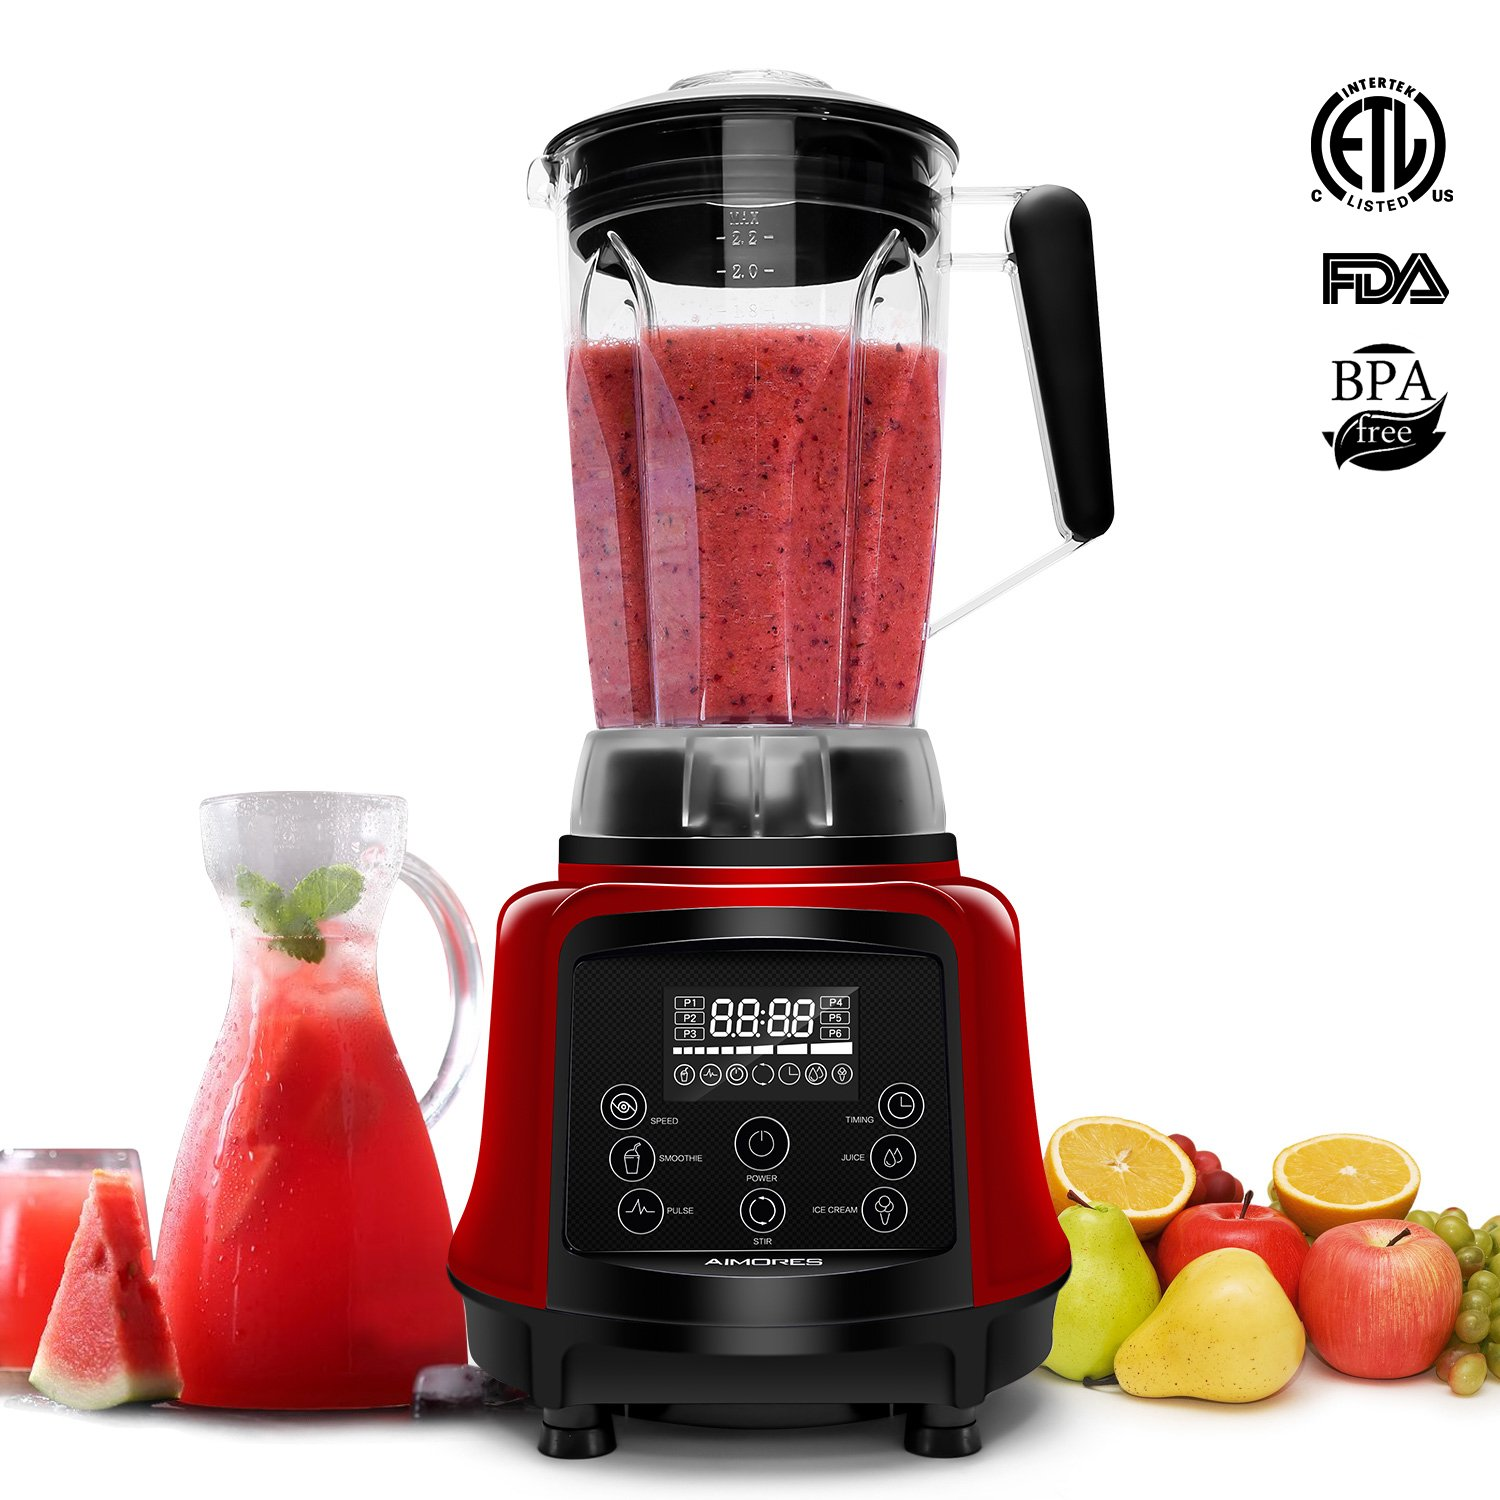 Professional Smoothie Blender | AIMORES 3-in-1 75oz. High Speed Programmed Juicer Ice Cream Maker | Auto Clean, 6 Blades, w/ Recipe & Tamper | ETL & FDA Certified (Red) by ISUN